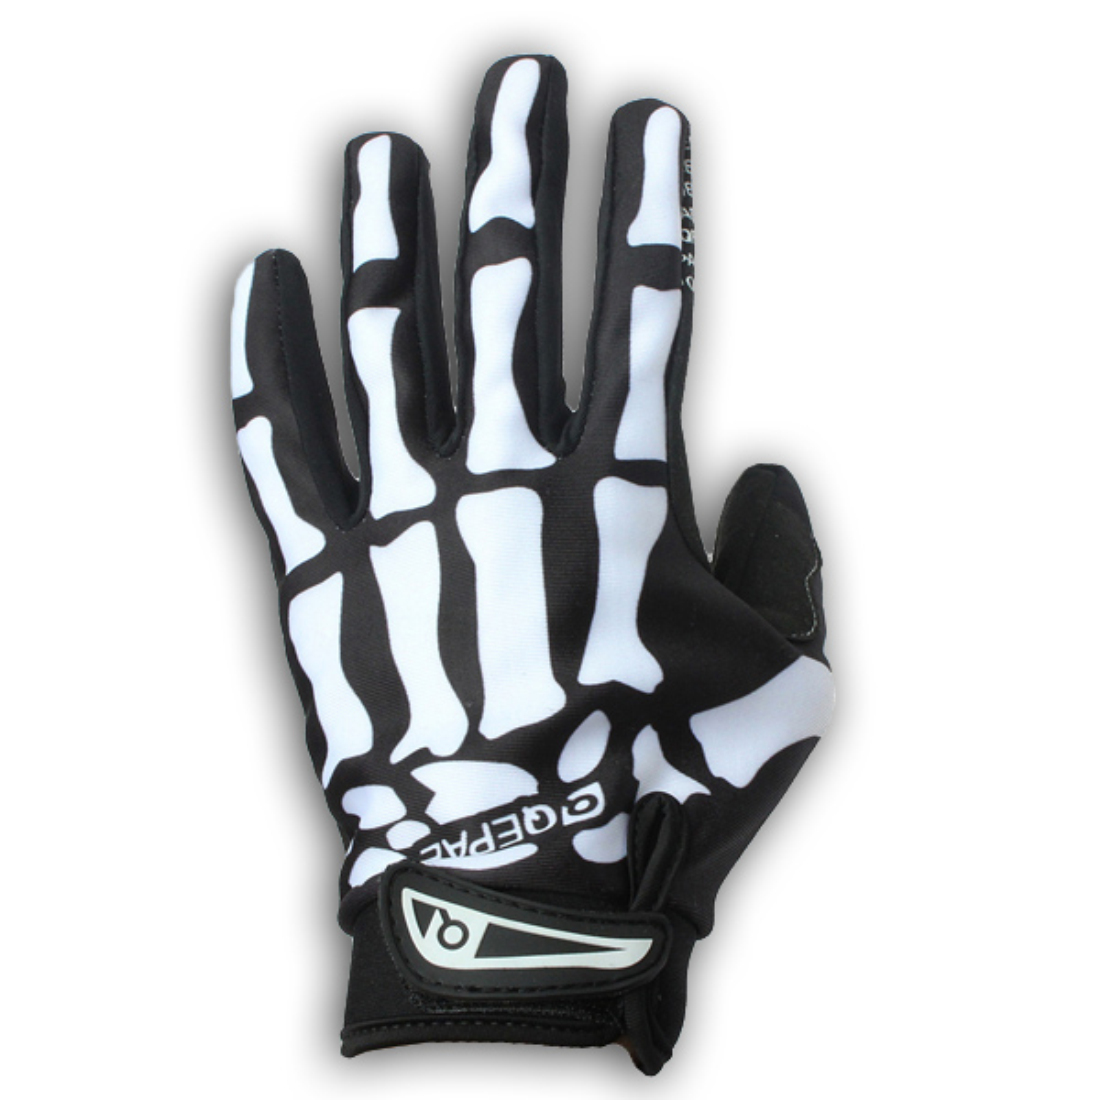 Workout Gloves Full Finger: QEPEA Weight Lifting Workout Body Building Training Gym